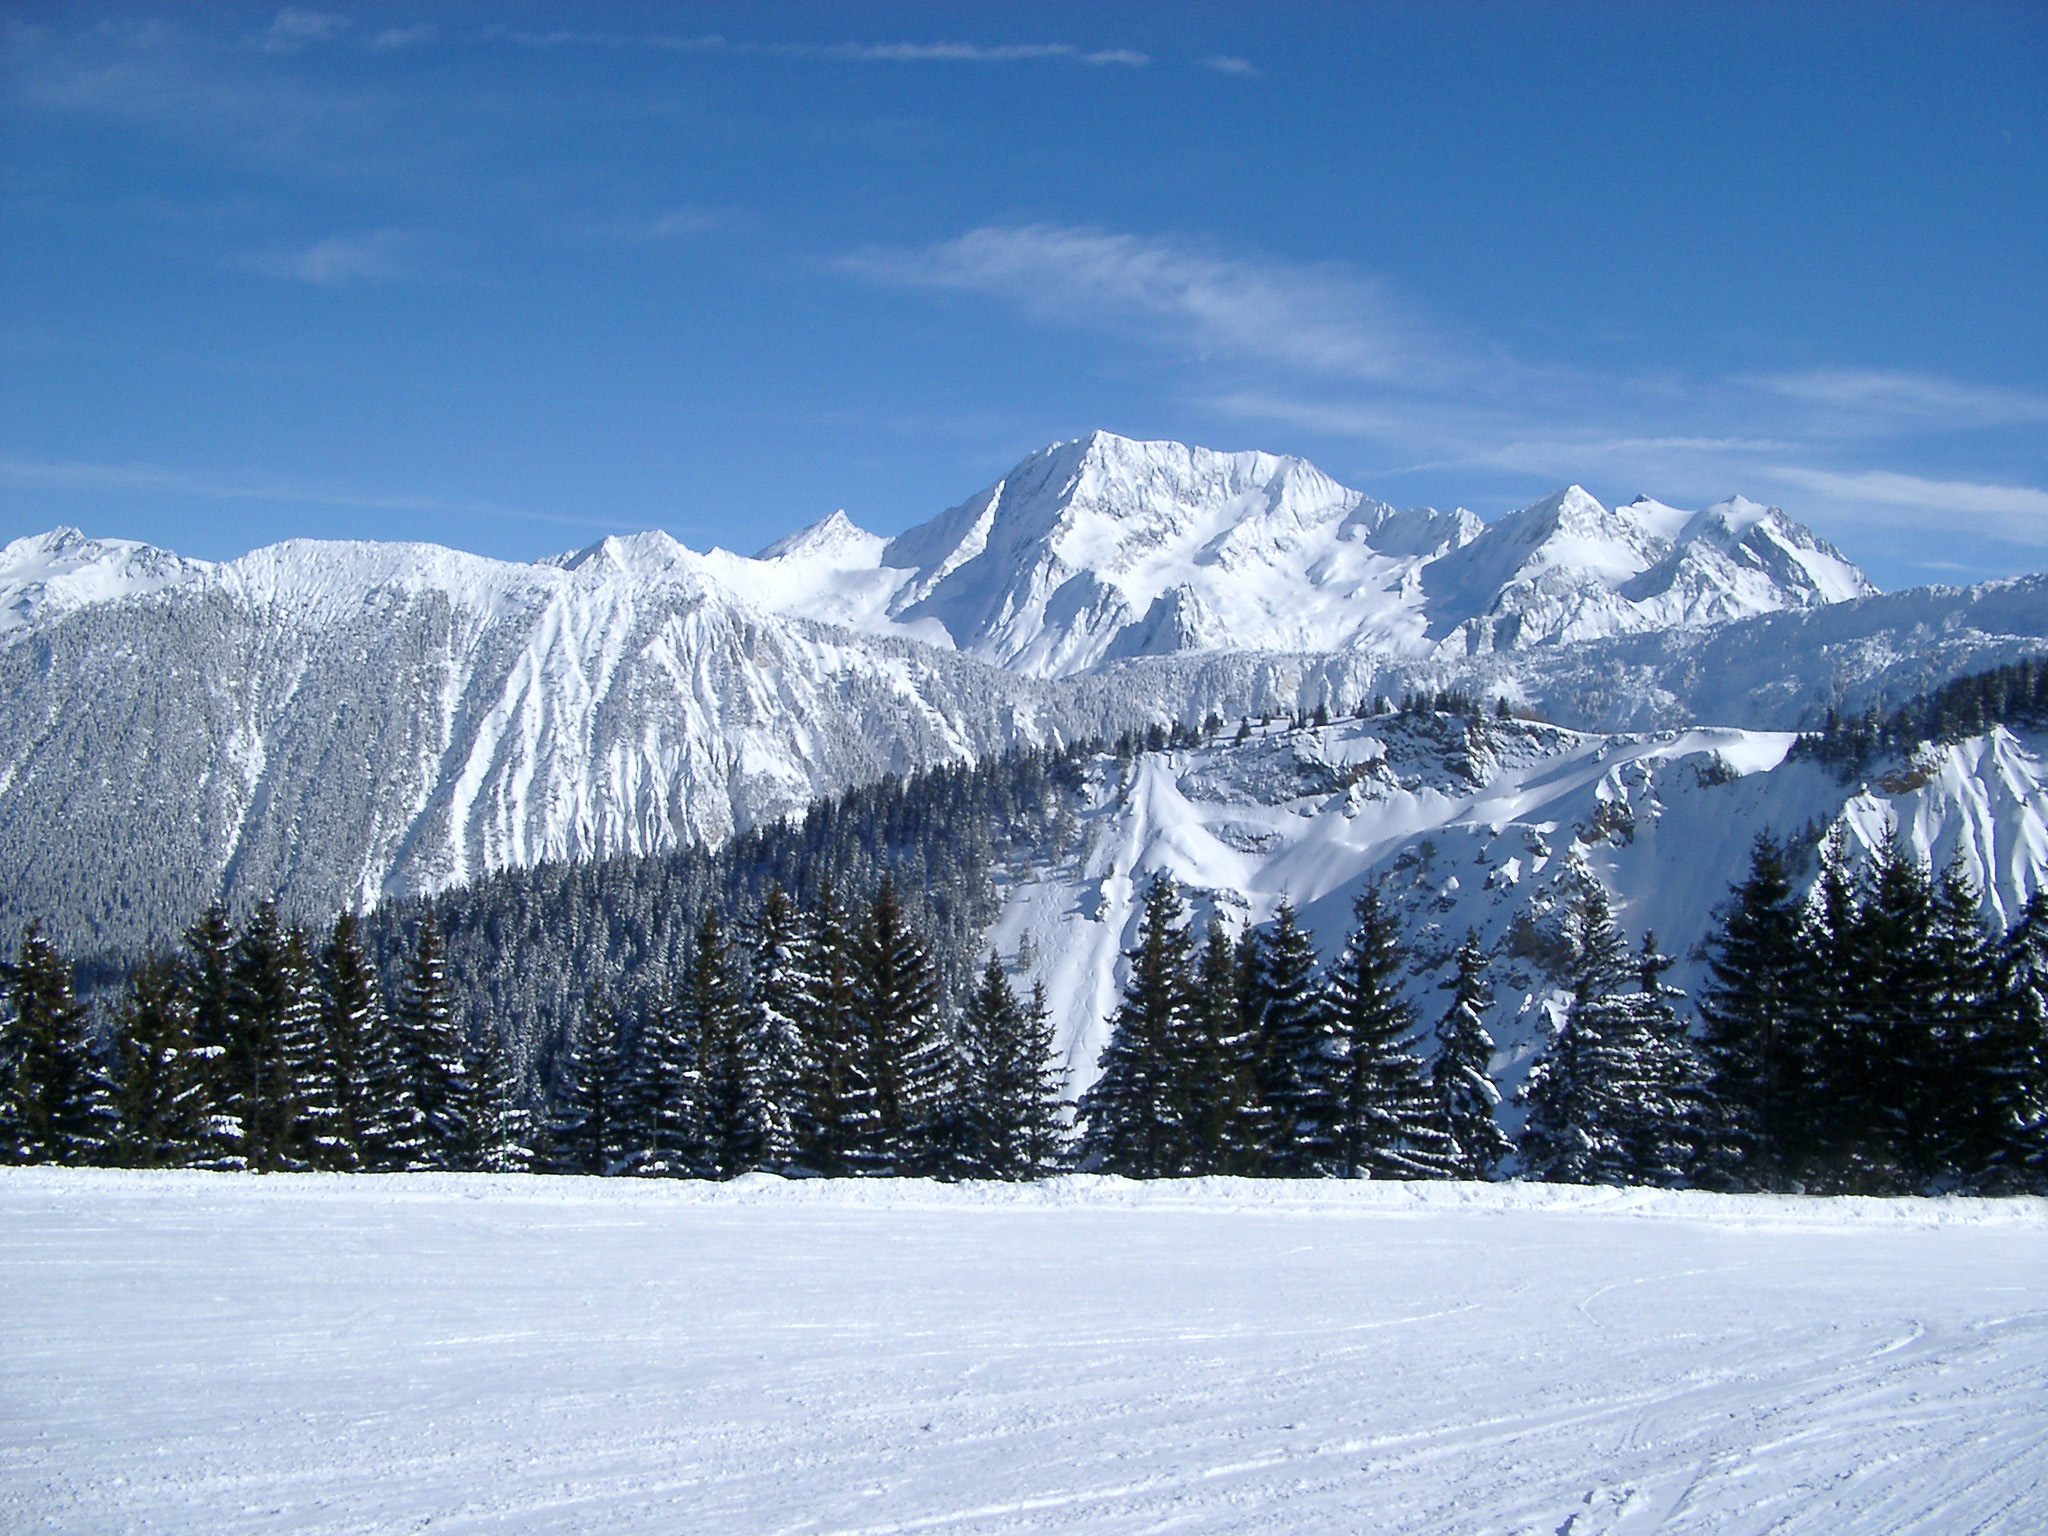 Beautiful Spot of Huge Mountains, Fir Trees and Wide Field Filled with Snow on Winter Holiday.